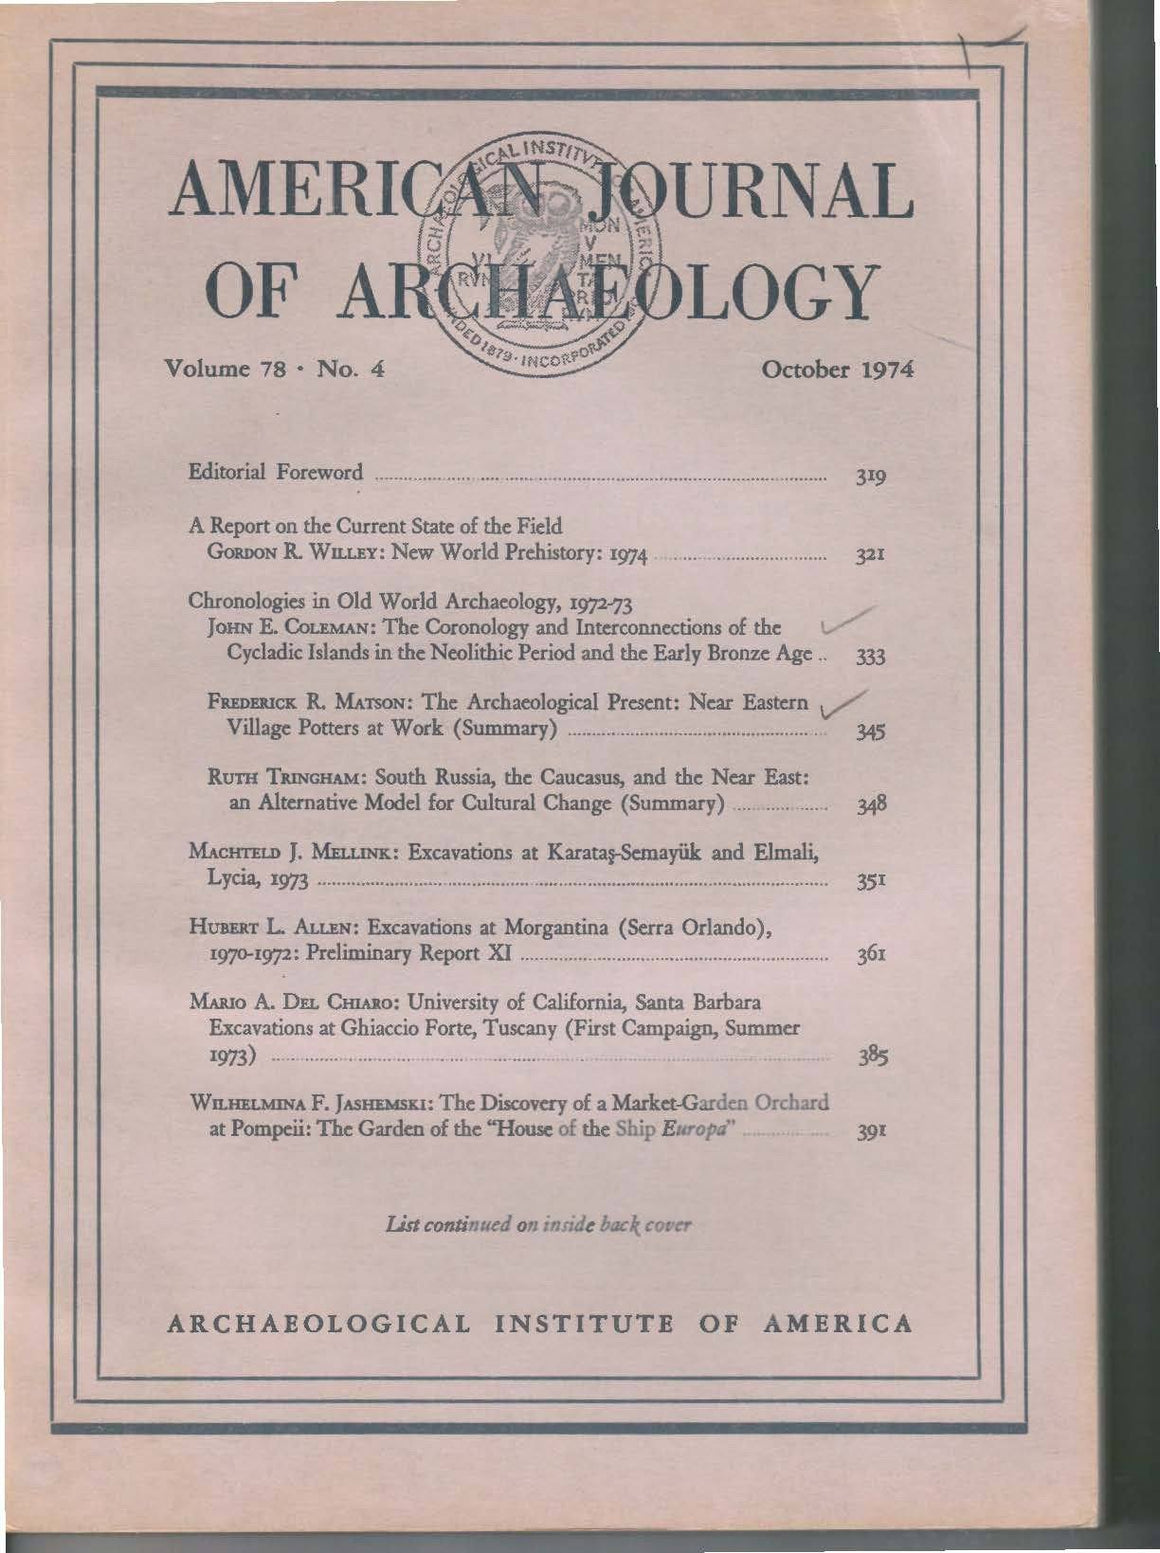 American Journal of Archaeology Vol. 78  No.4 - Sands of Time Ancient Art